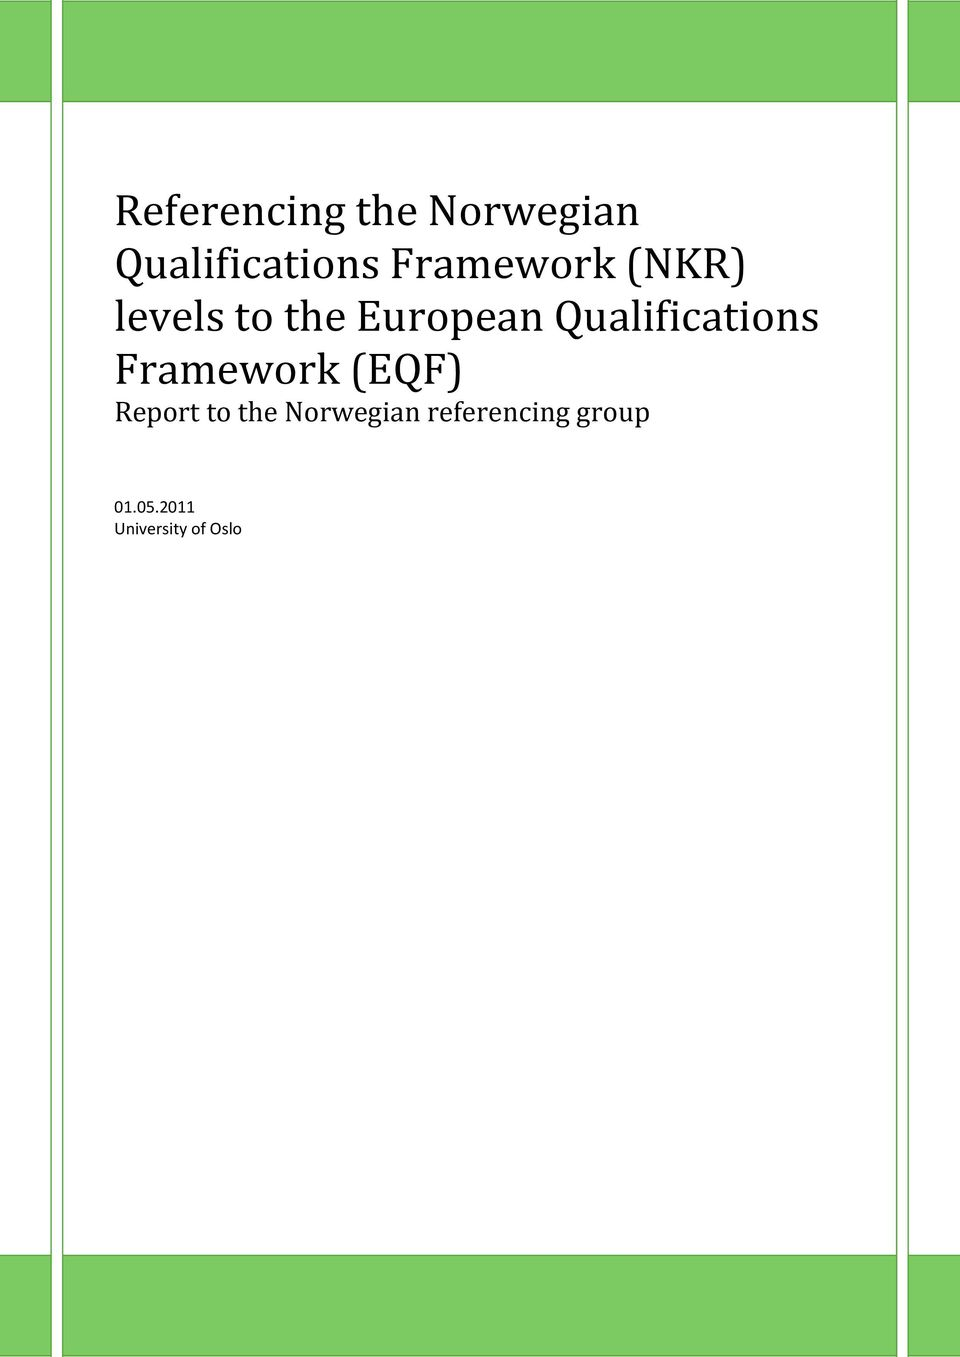 Qualifications Framework (EQF) Report to the